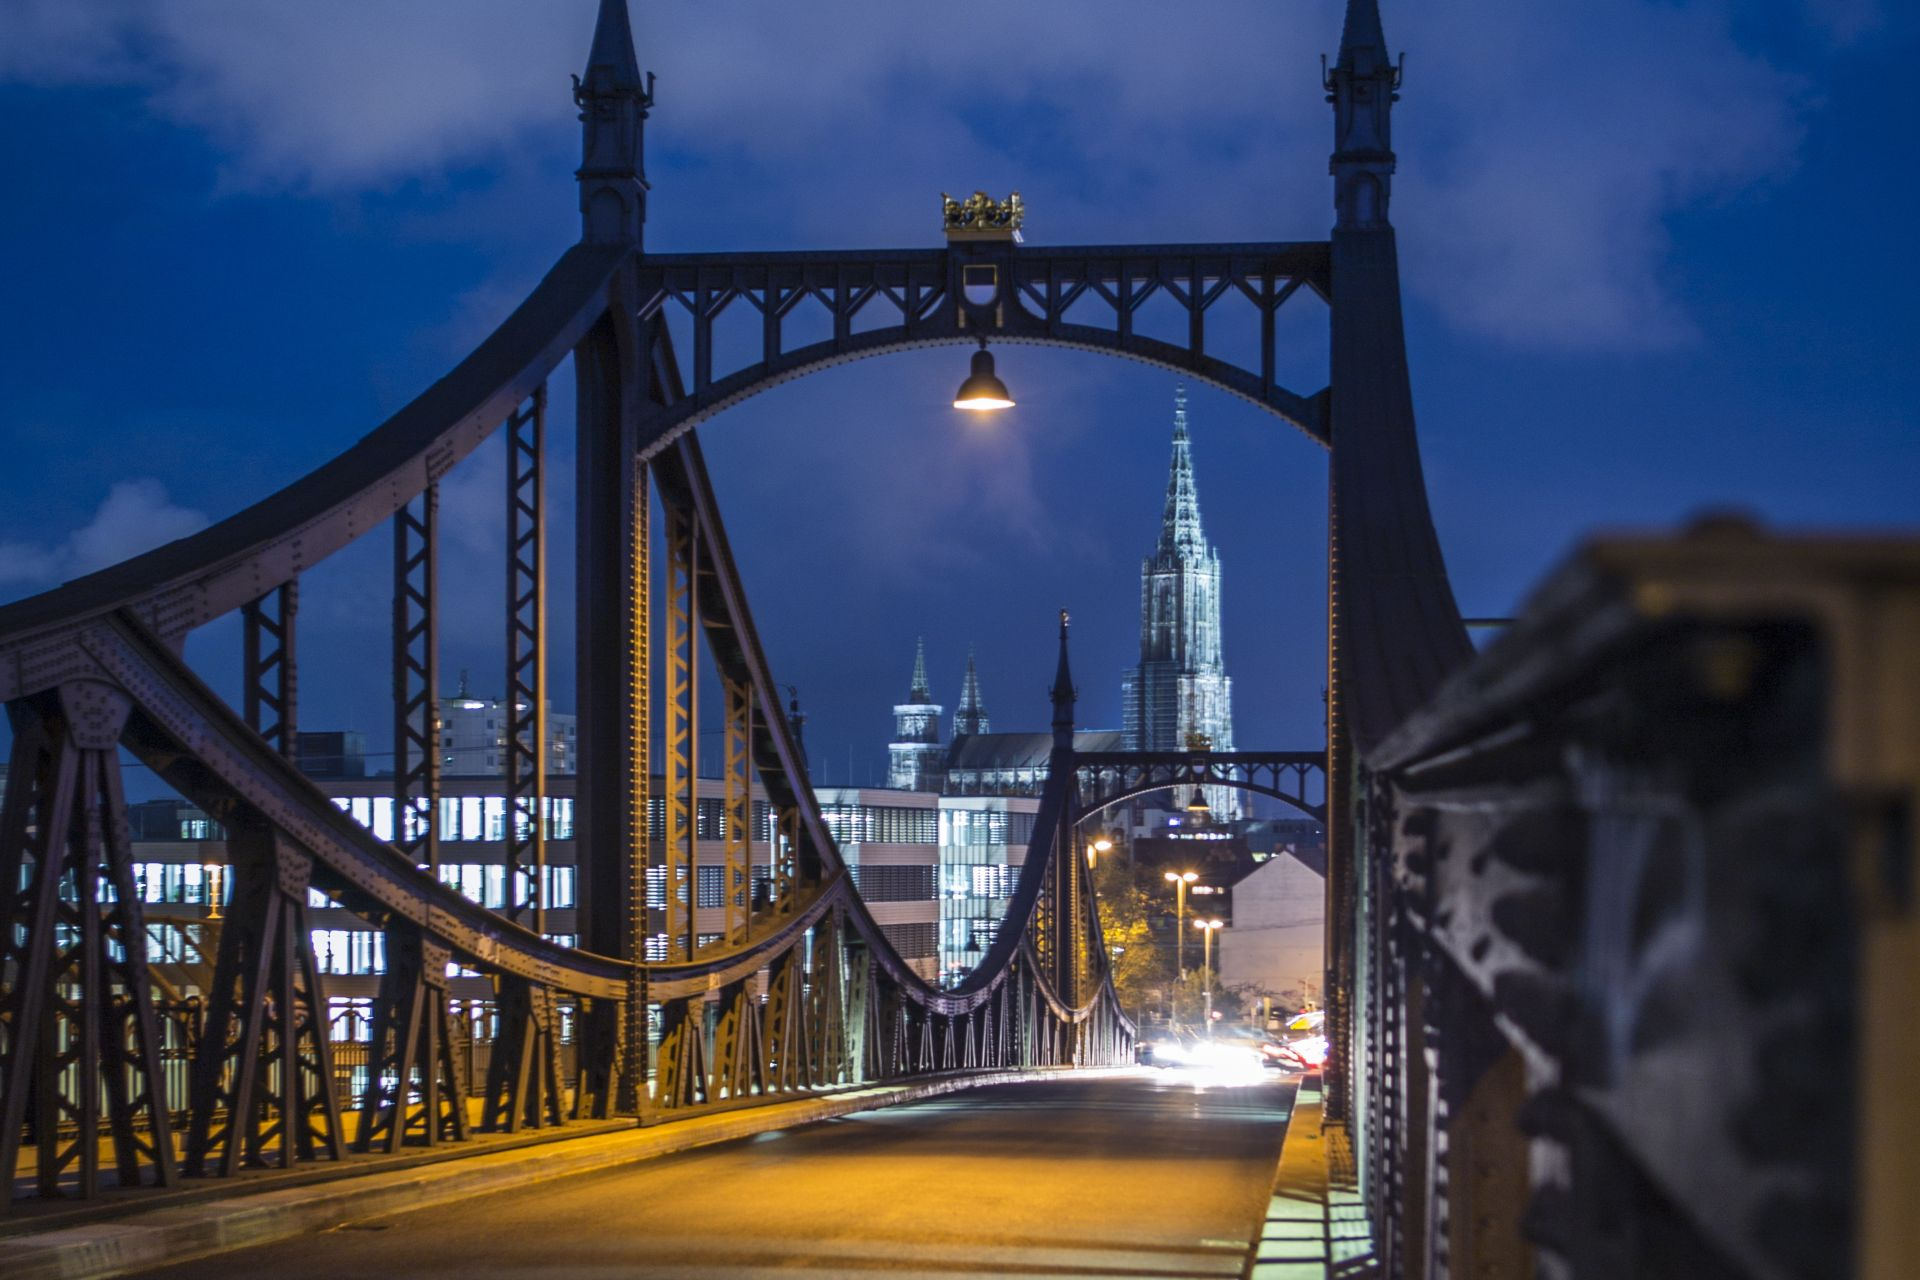 Neutorbridge at night in Ulm, Germany